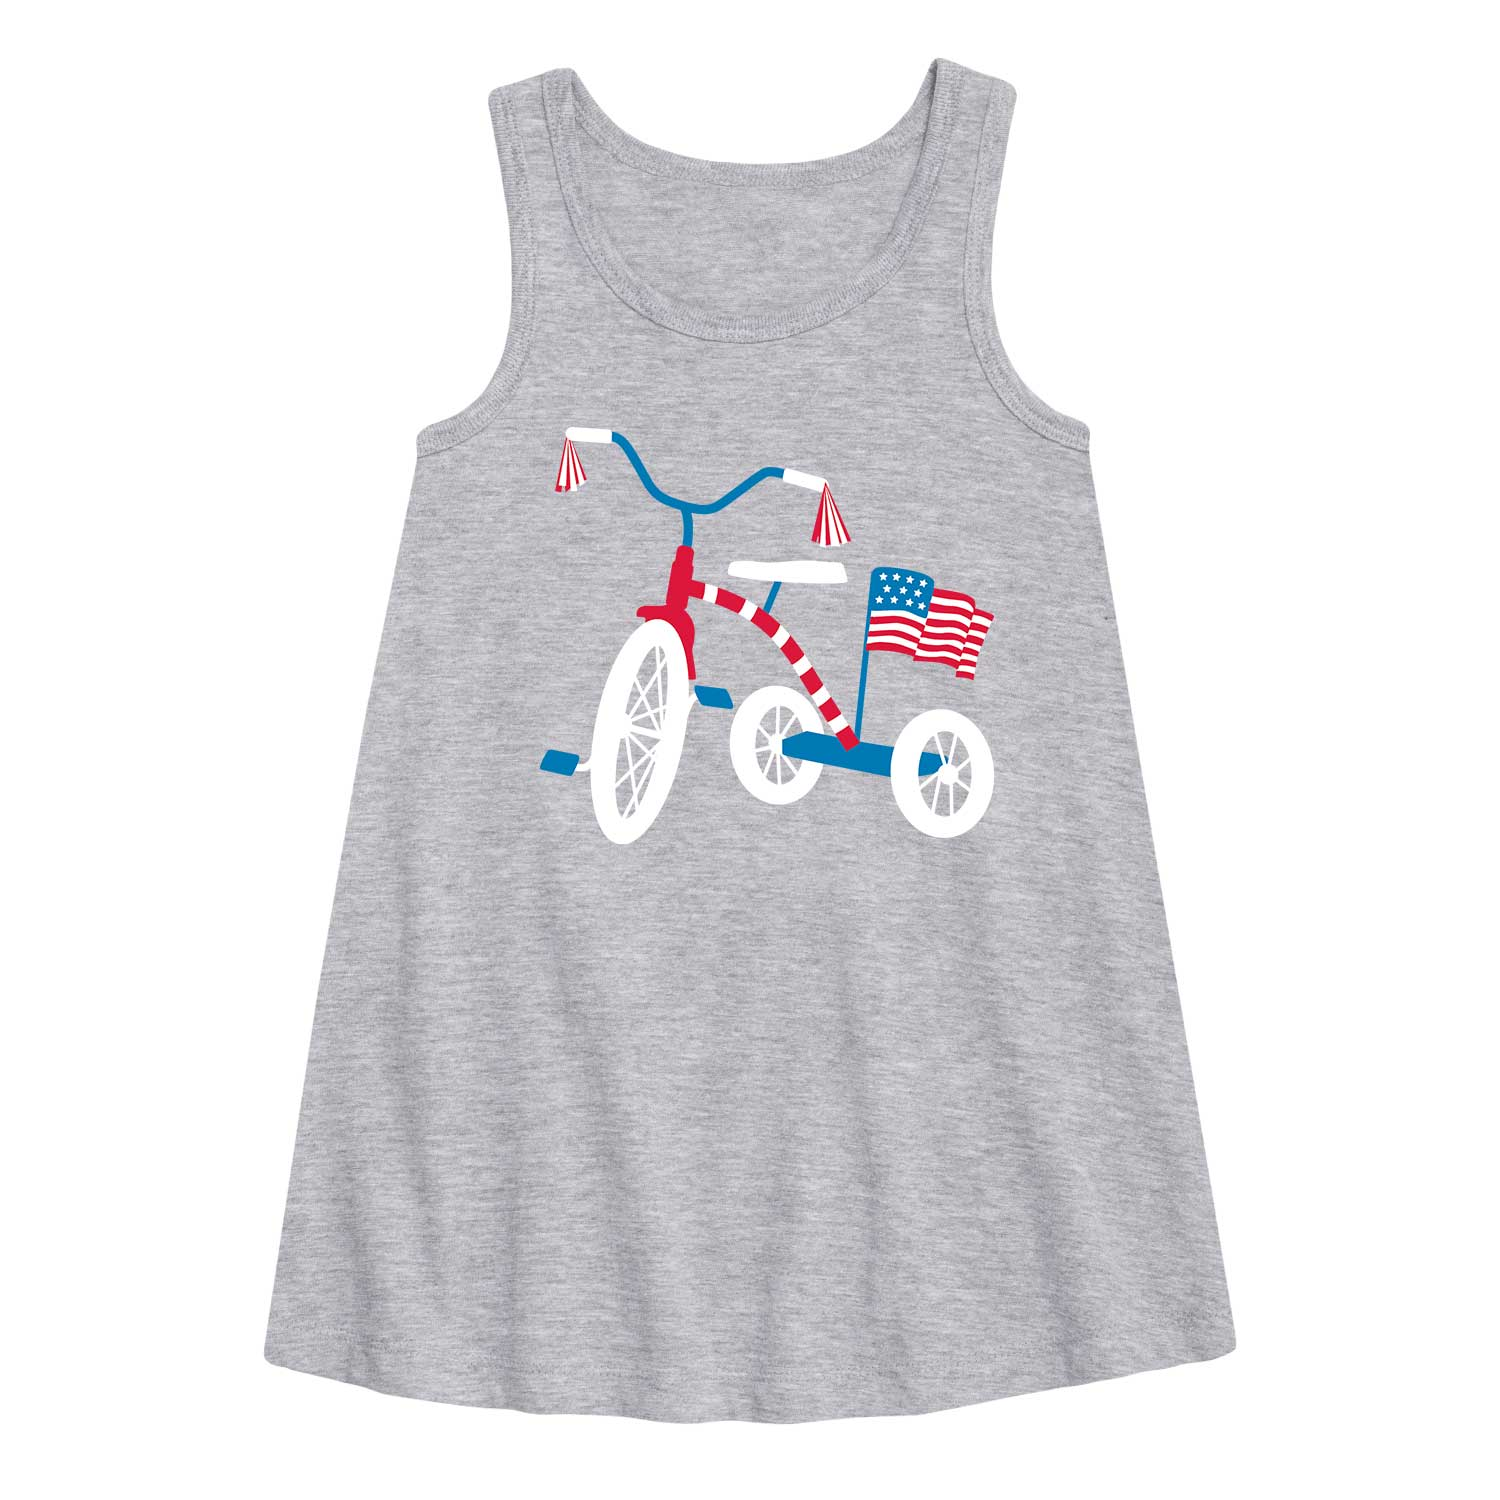 Patriotic Tricycle - Toddler Girl A-Line Dress